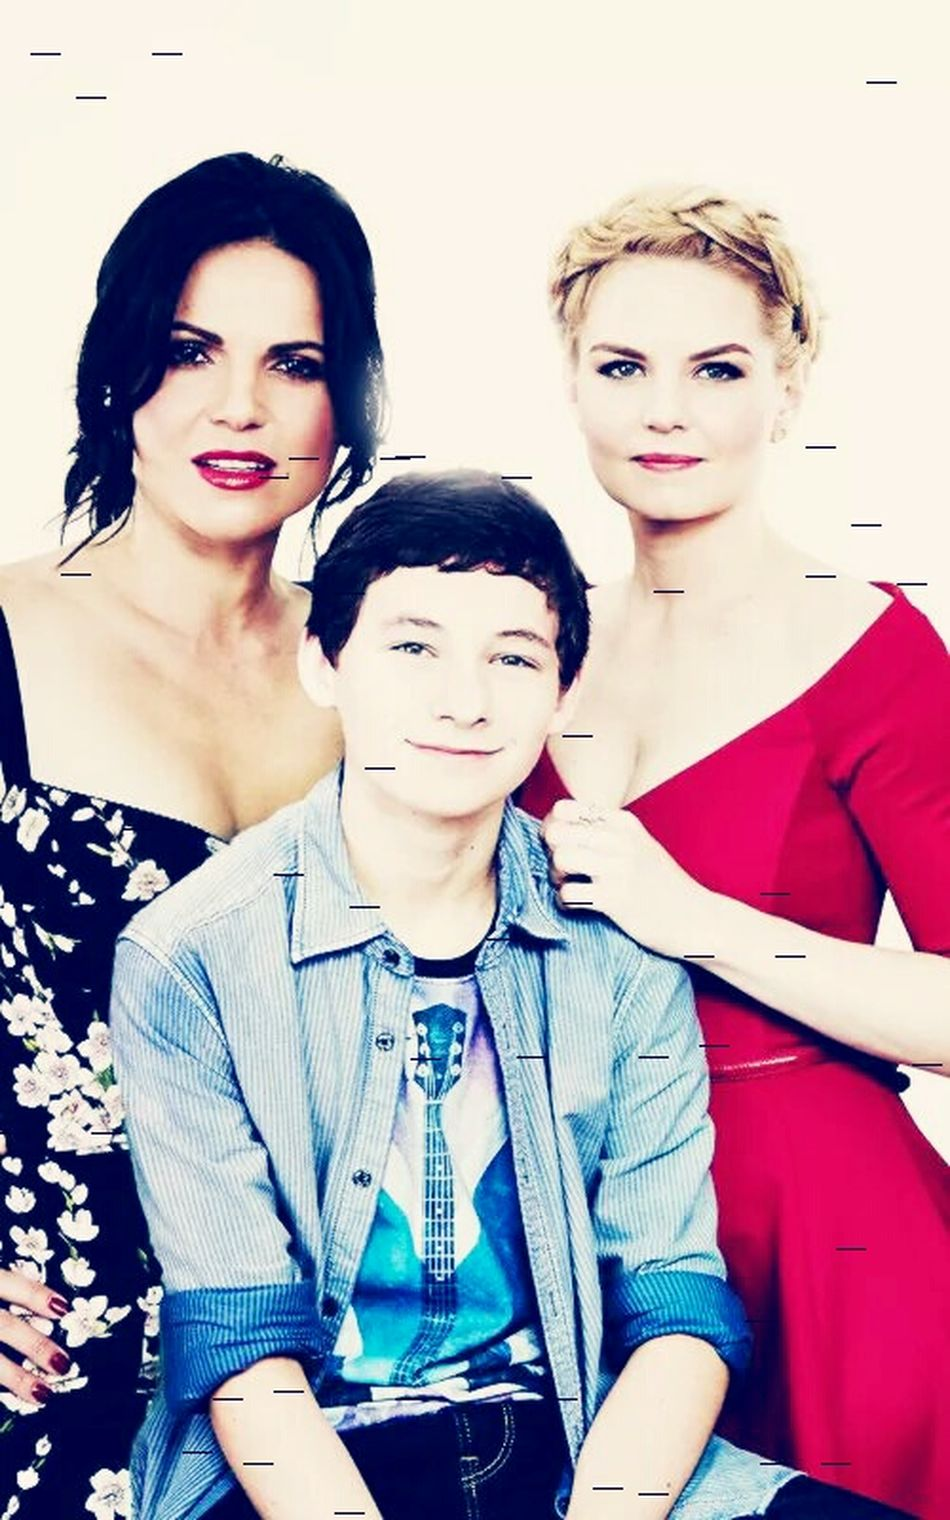 Family Beautiful ♥ Laba_parrila Reginamills Emma Henry 😍✌